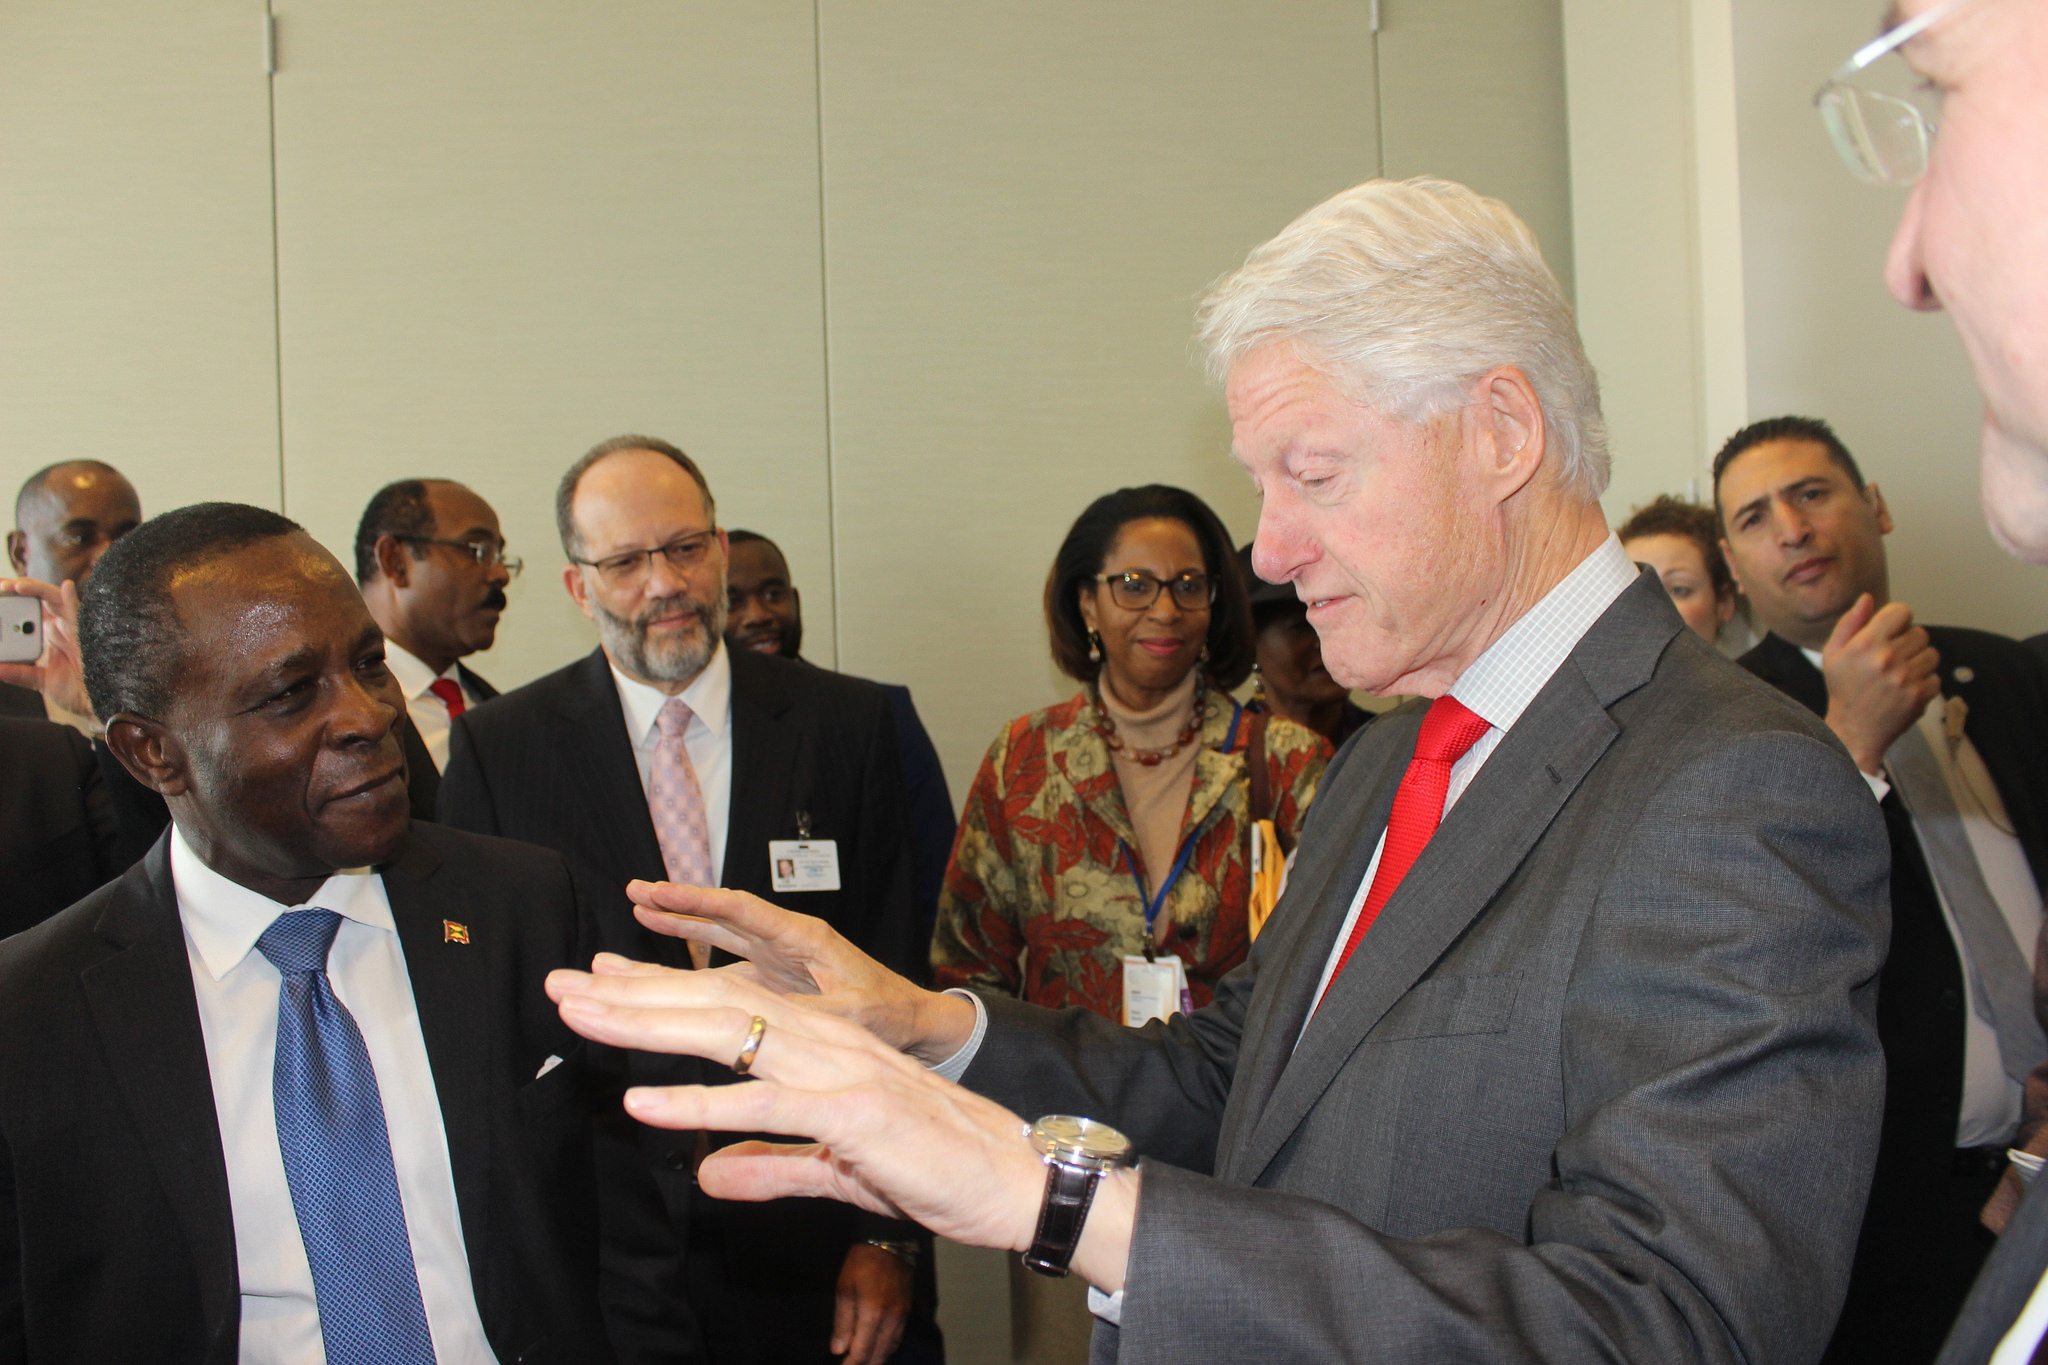 Former President of the United States, Bill Clinton interacting with CARICOM Heads of Government, Secretary-General and other officials on the sidelines of the CARICOM-UN High Level Pledging Conference at the UN Headquarters in New York